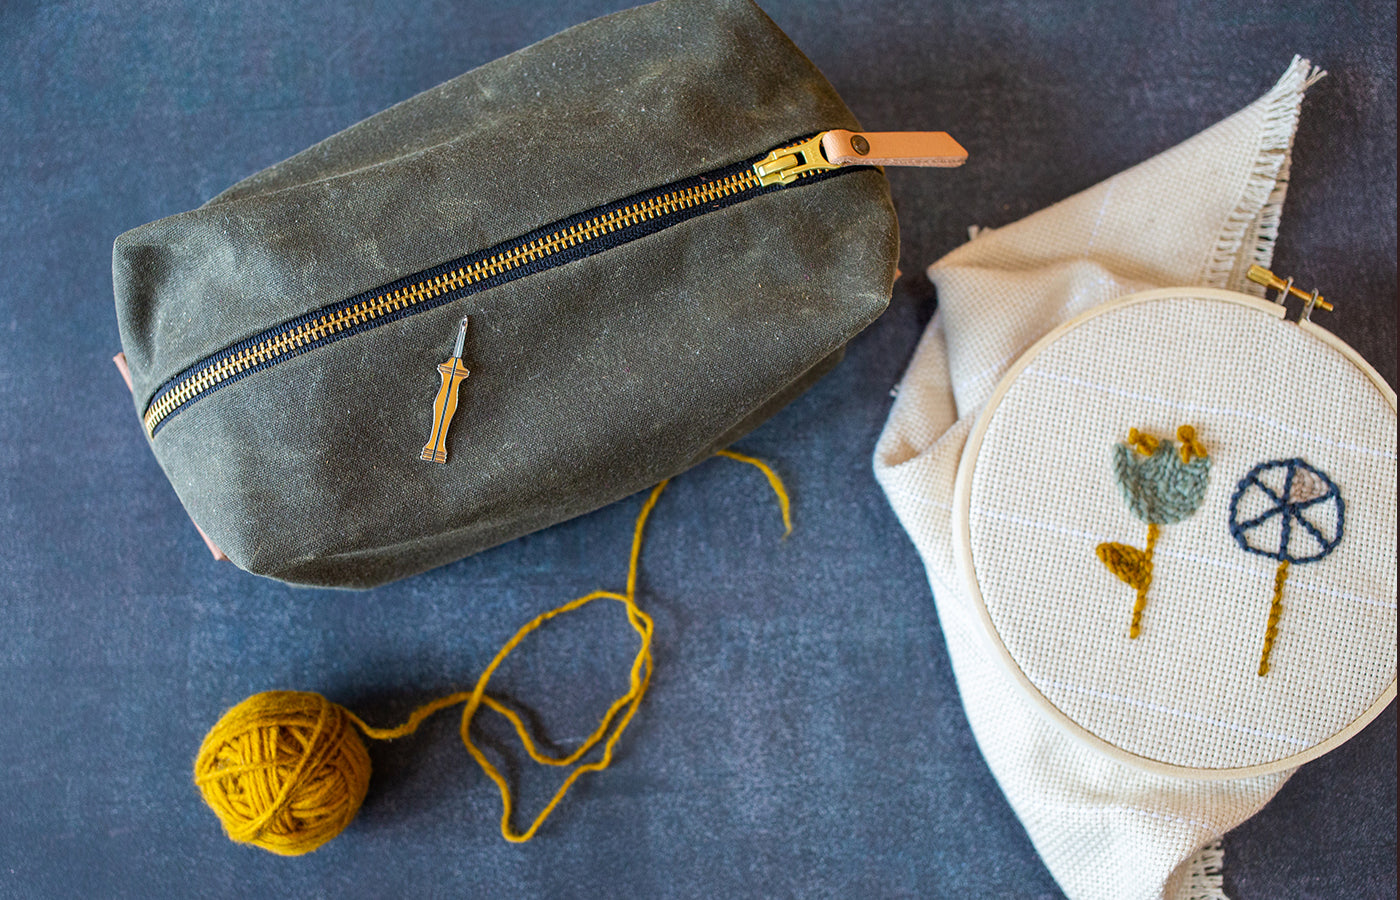 Waxed Canvas dopp kit is perfect for travel sewing supplies